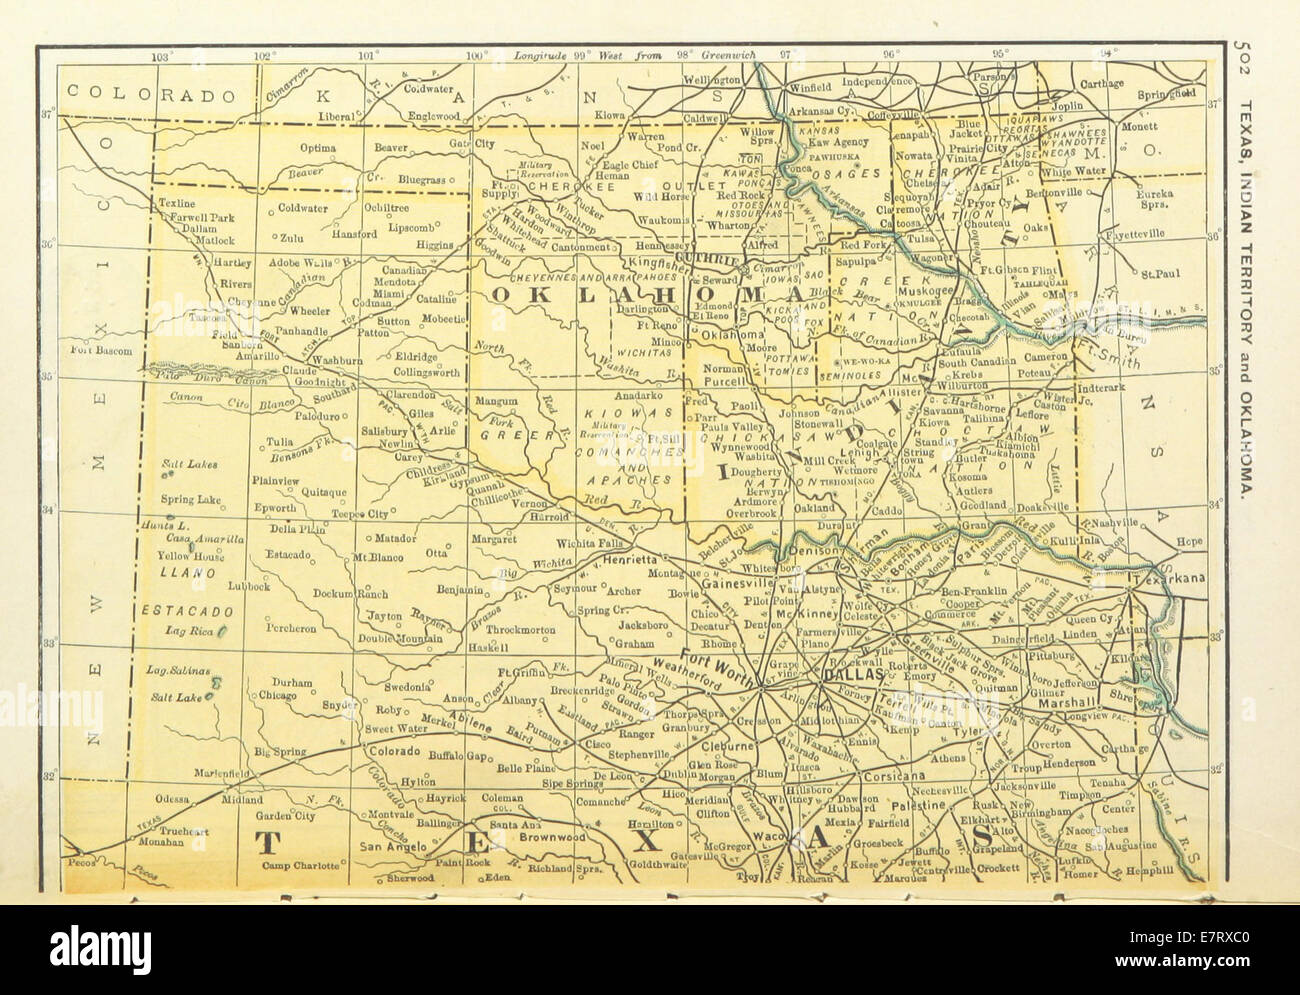 US-MAPS(1891) p504 - MAP OF TEXAS, OKLAHOMA AND INDIAN ...